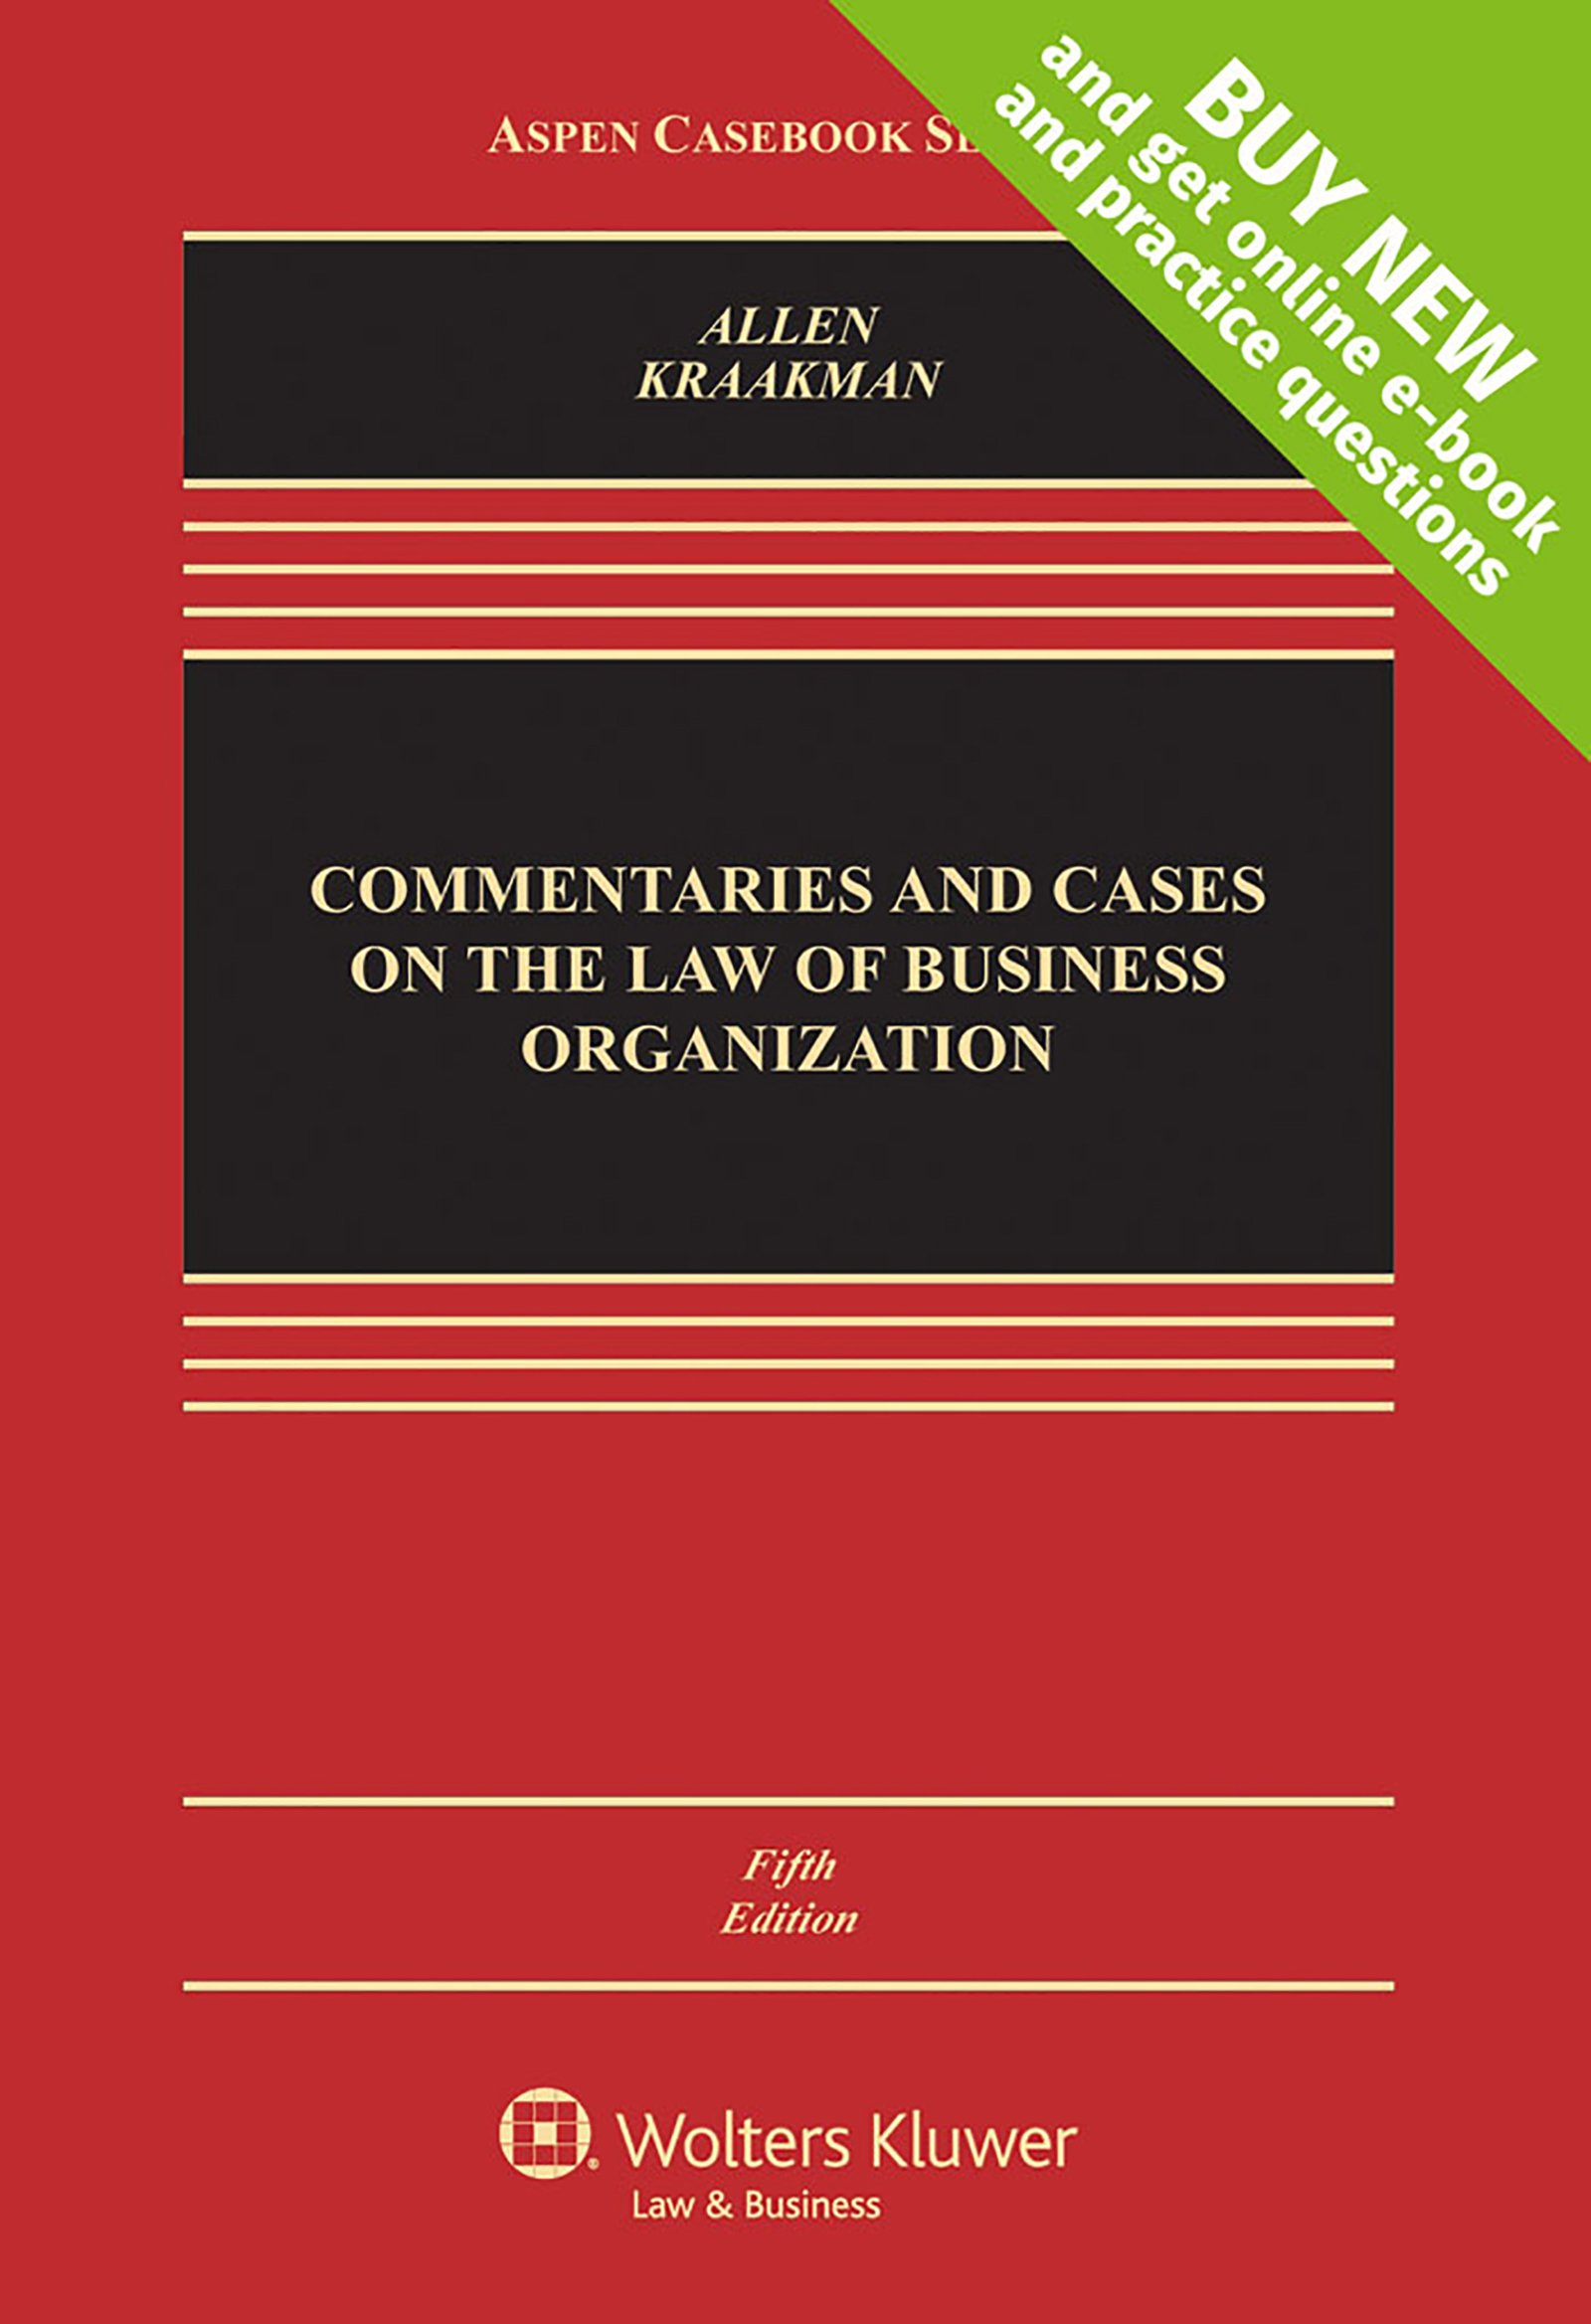 Commentaries and Cases on the Law of Business Organizations [Connected Casebook] (Aspen Casebook Series) by Wolters Kluwer